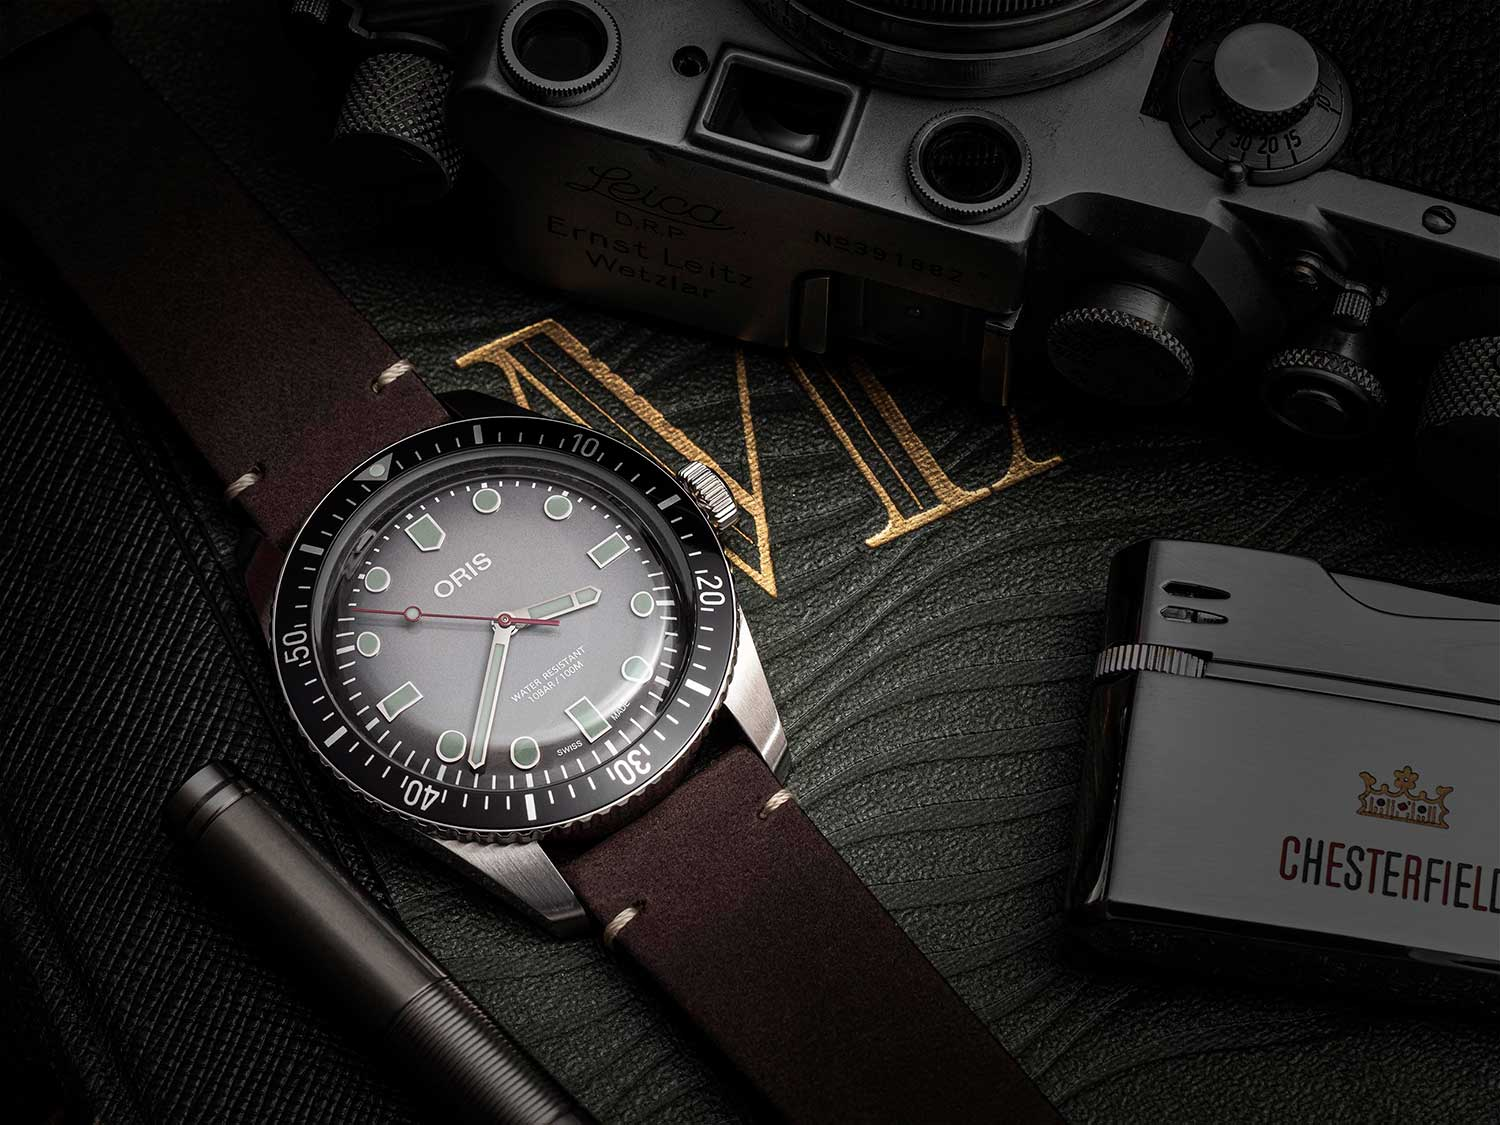 Cronotempvs Spirit of Sixty-Five by Oris